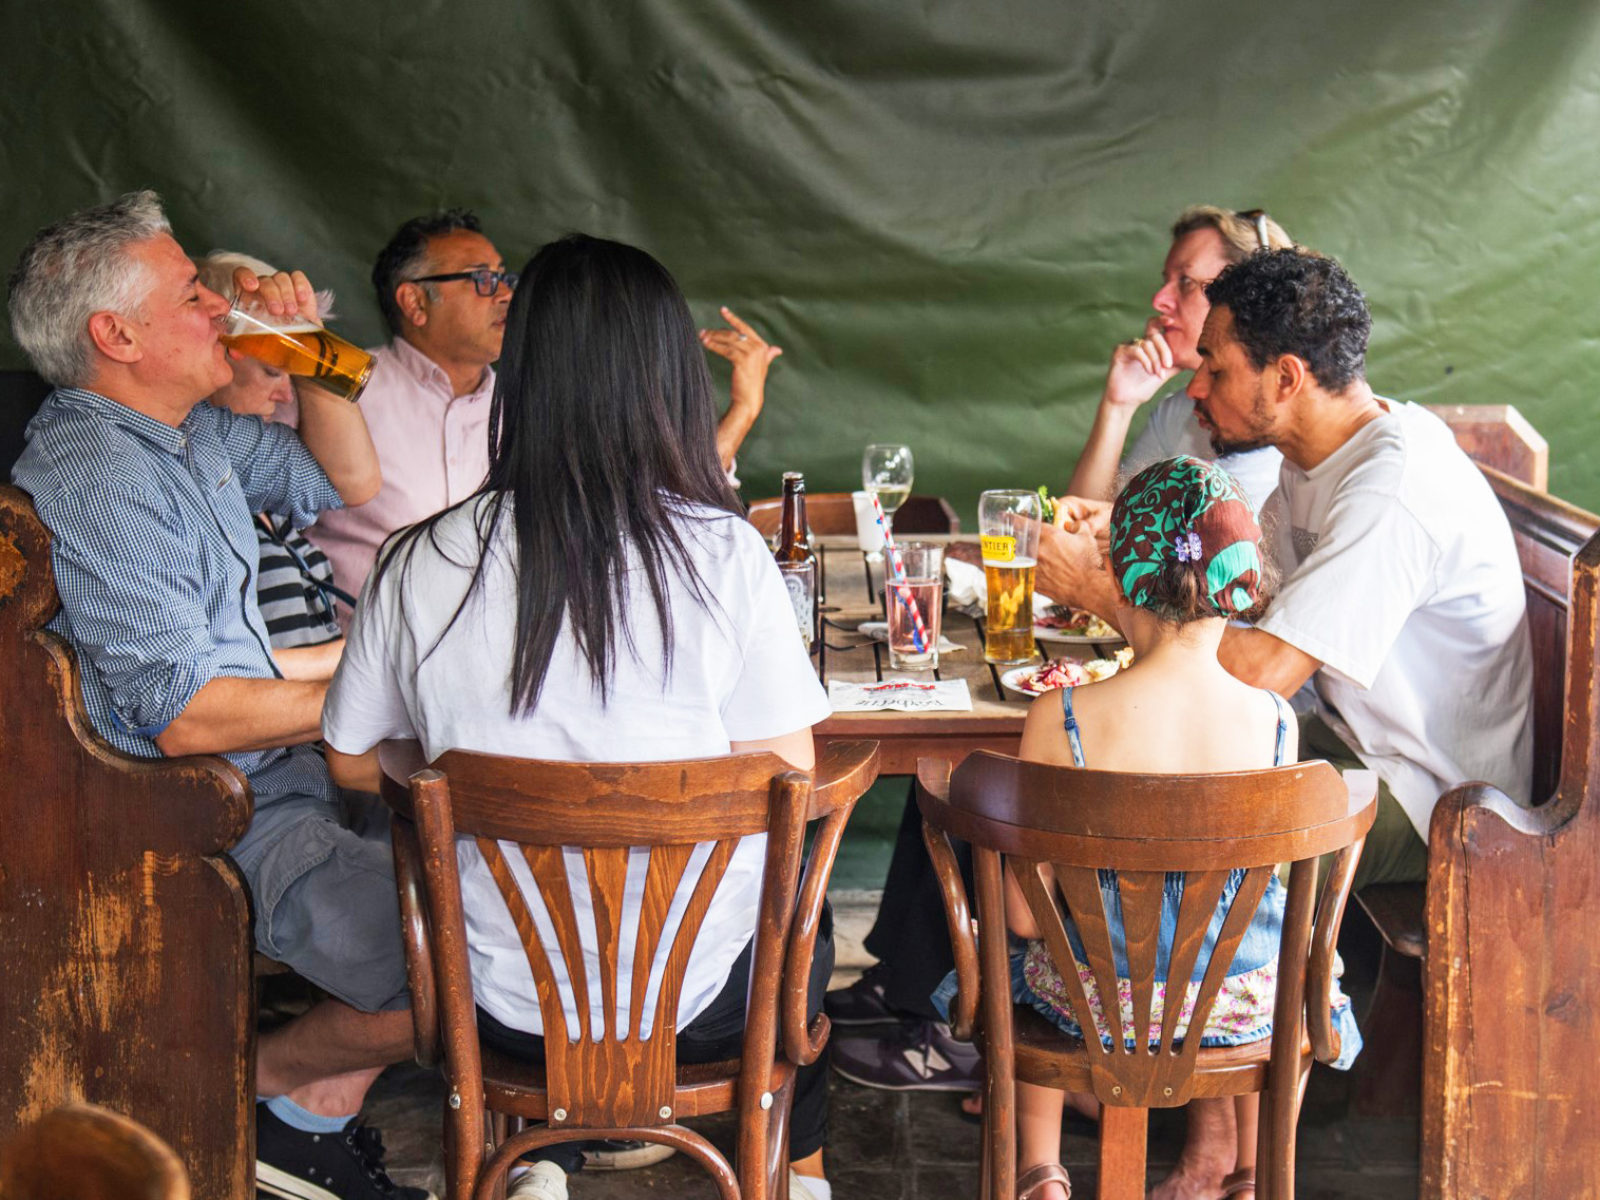 Our outside space is ideal for a nice family lunch